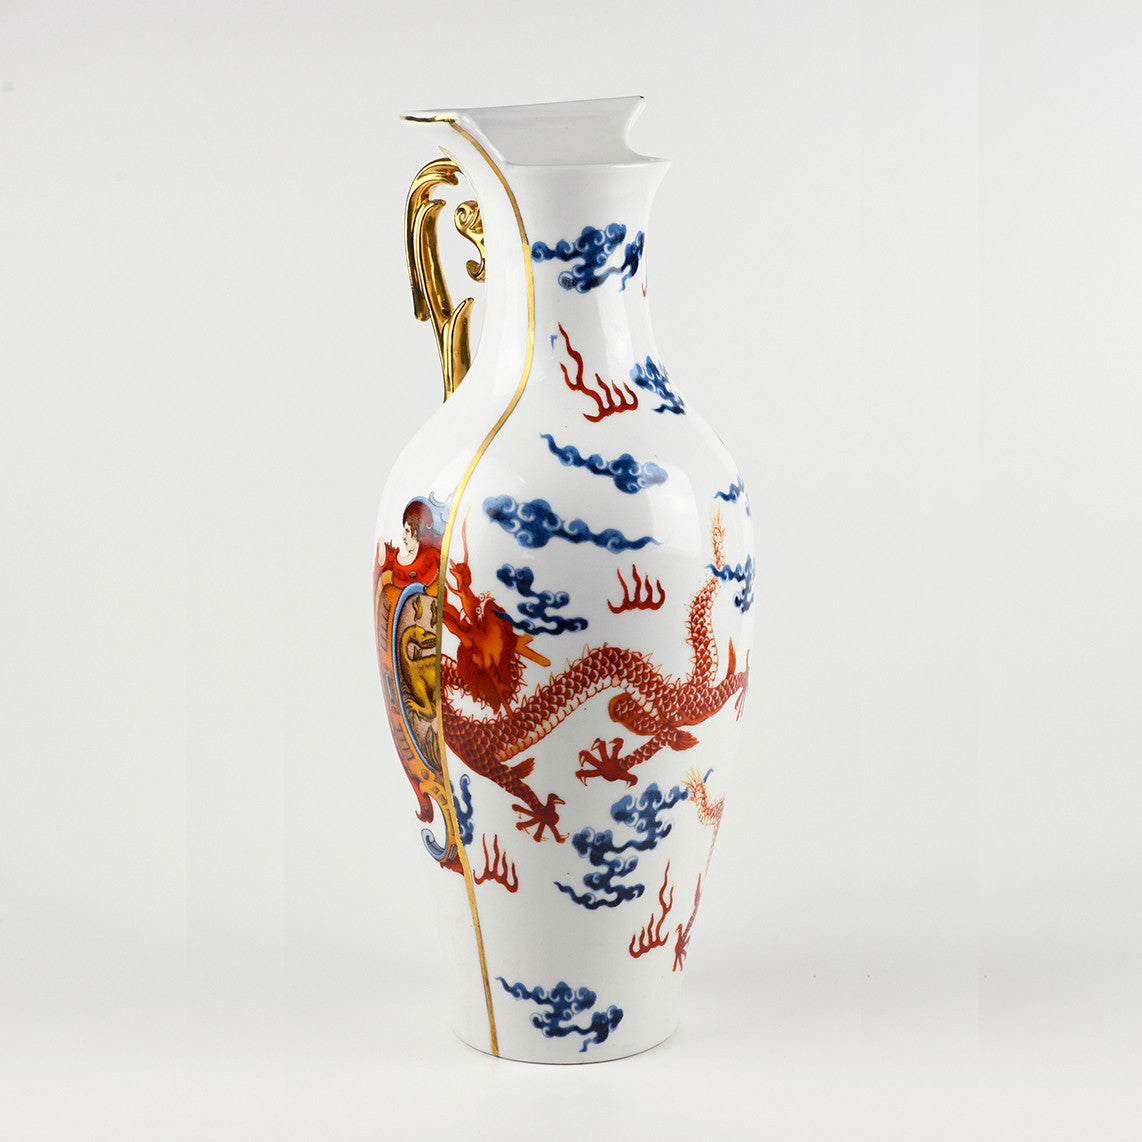 Juxtaposed Vase